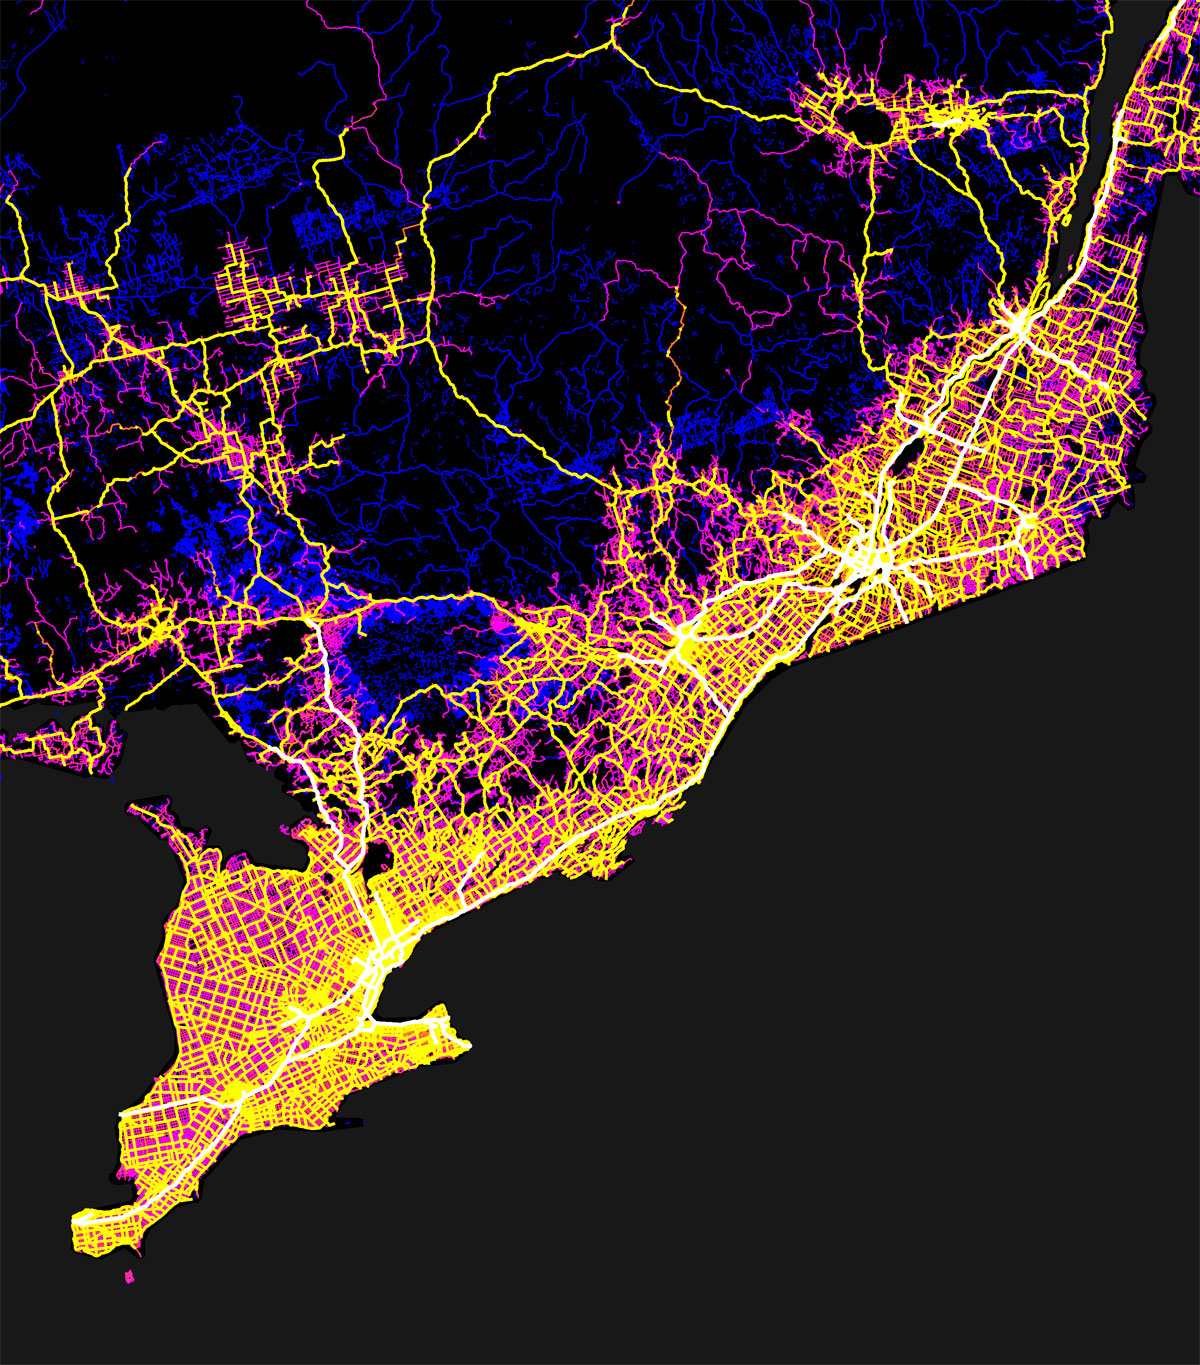 canada mapped by trails roads streets and highways by robbi bishop taylor 2 Canada Mapped by Trails, Roads, Streets and Highways